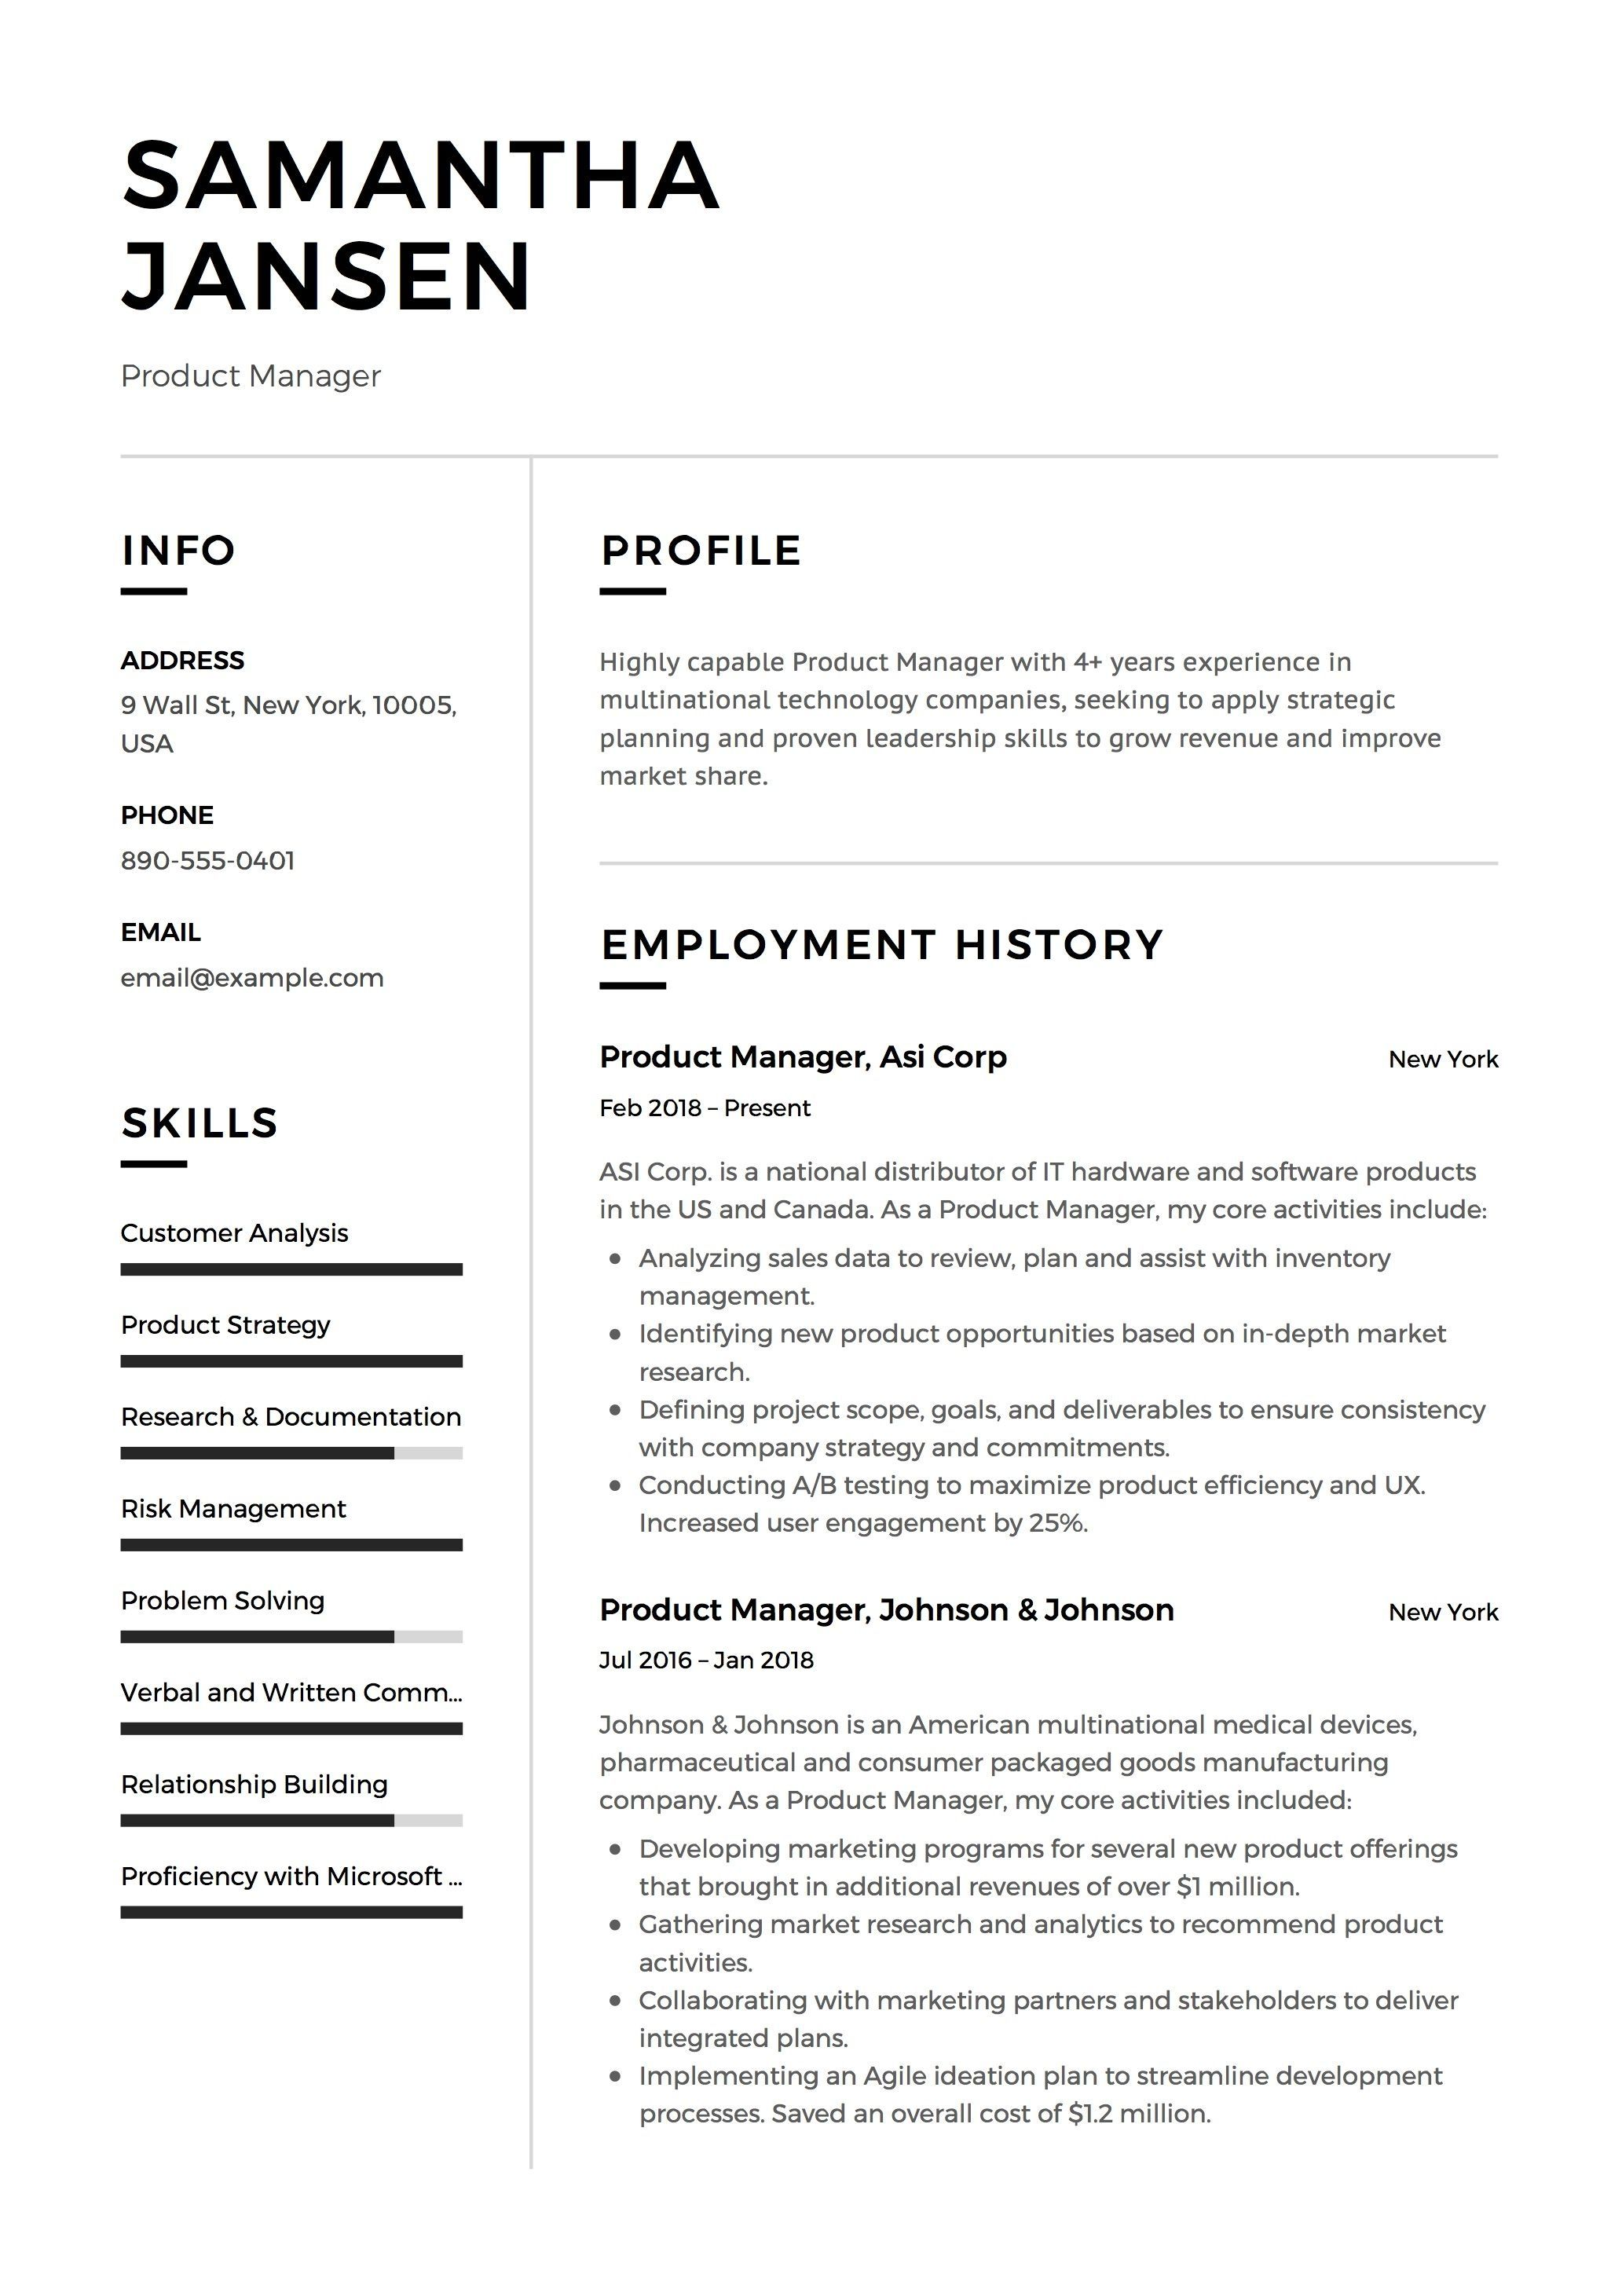 Architecture Student Resume Template The 9 You Will Never Believe These Bizarre Truth Of Resume Template Examples Job Resume Examples Student Resume Template